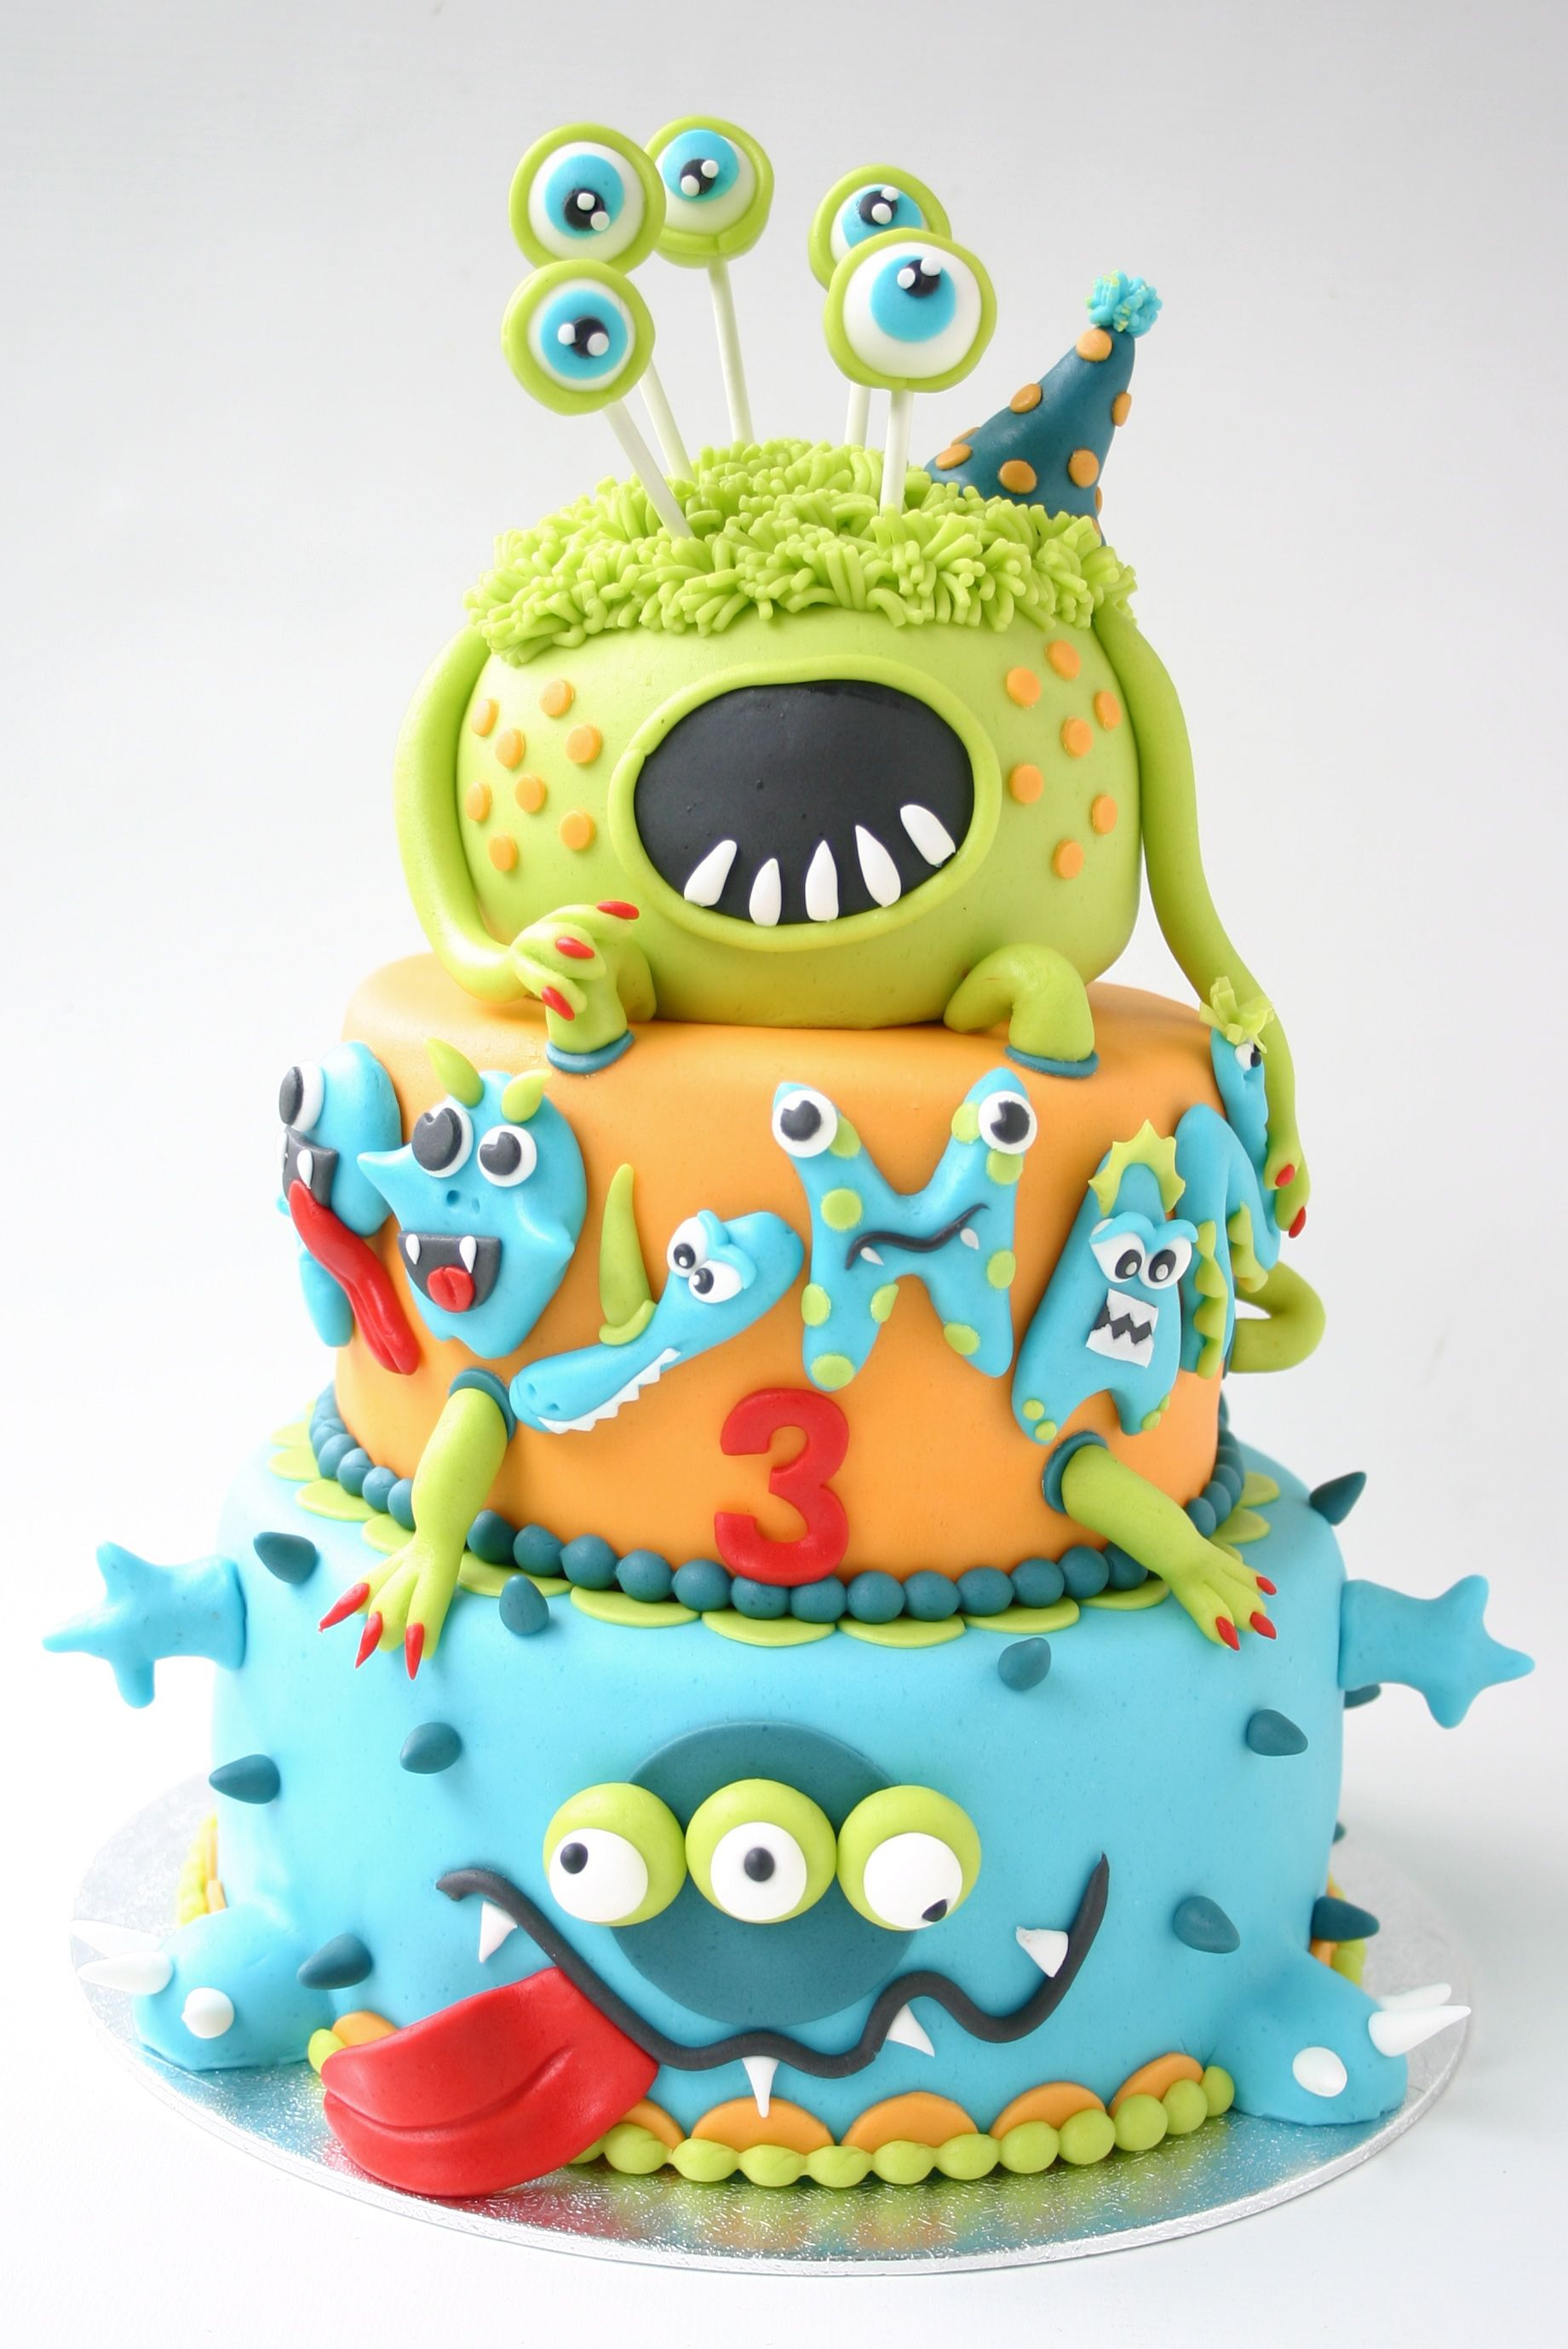 Monster Birthday Cake Cute Monster Cake A Monster For A 3 Year Old Must Be Not So Scary